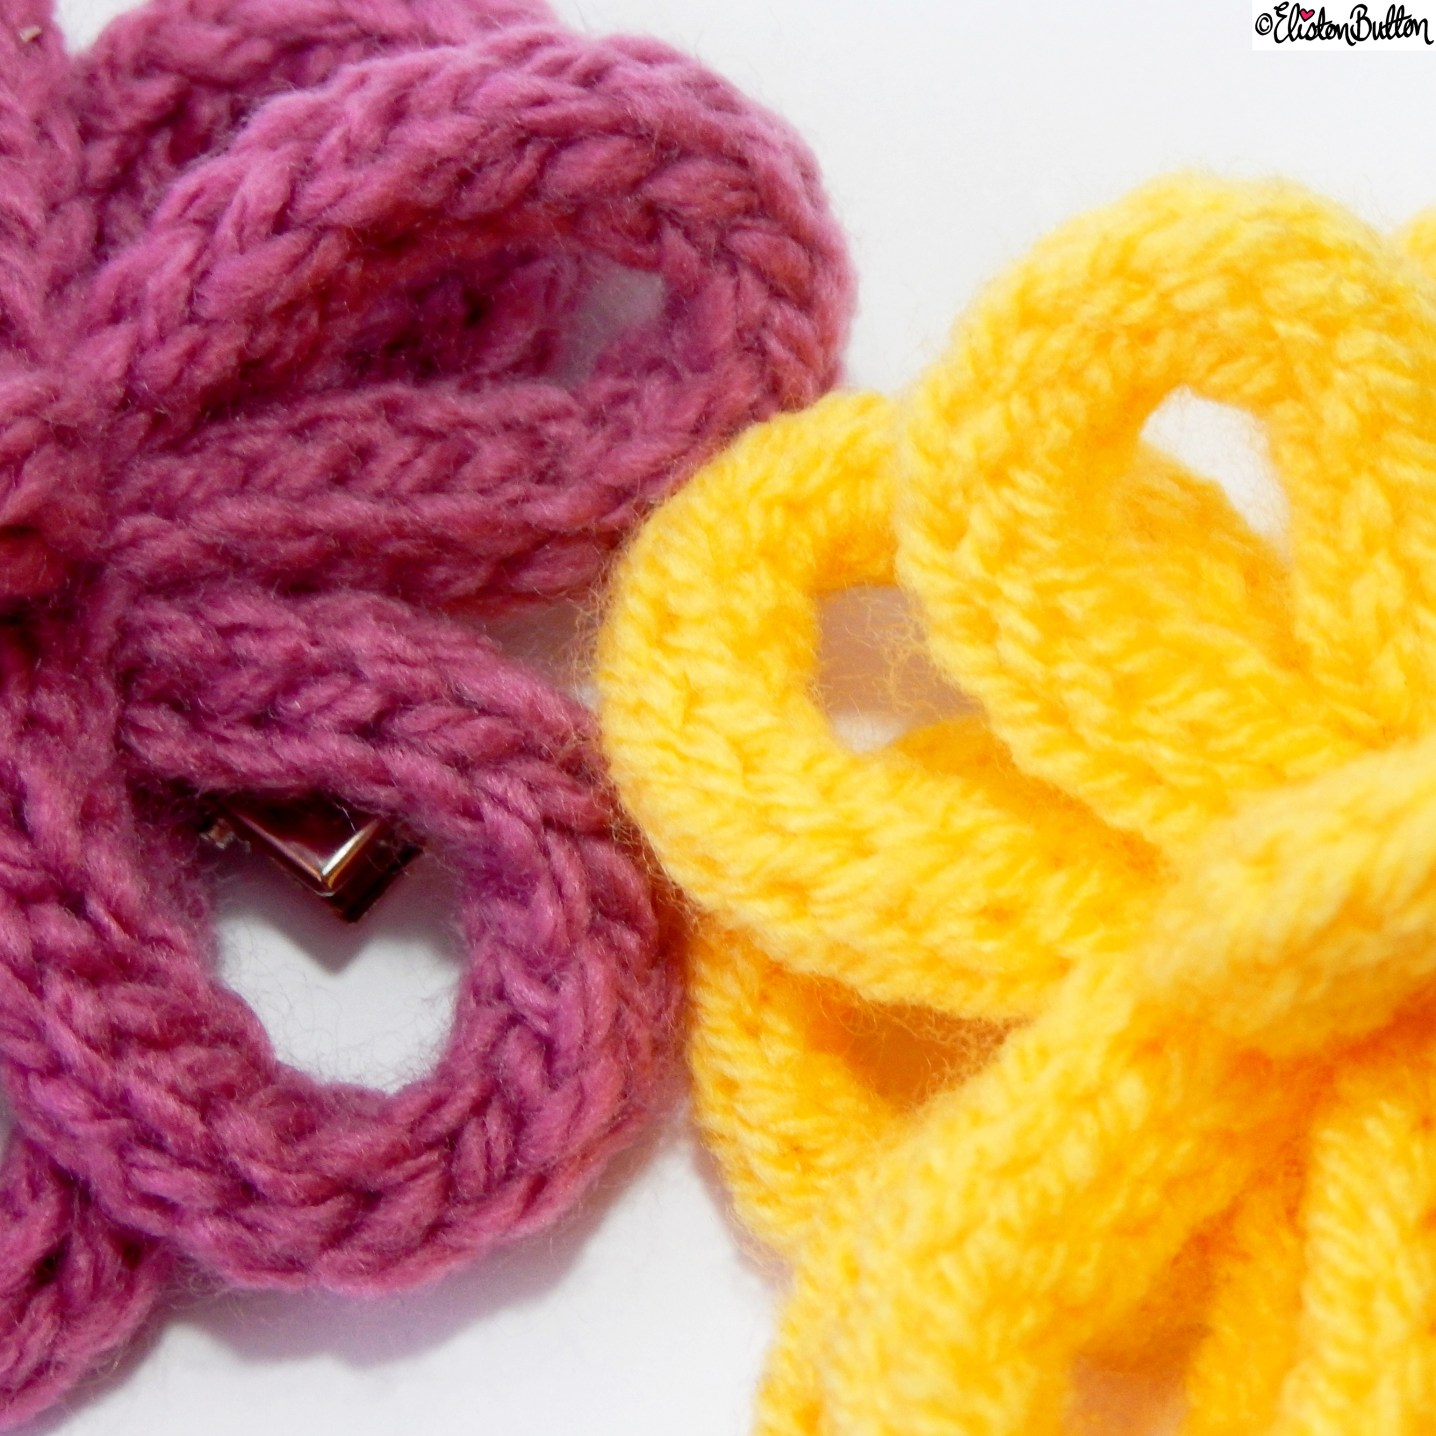 6. French Knitted Flower Hair Clips Close Up - Around Here...May 2015 at www.elistonbutton.com - Eliston Button - That Crafty Kid – Art, Design, Craft & Adventure.